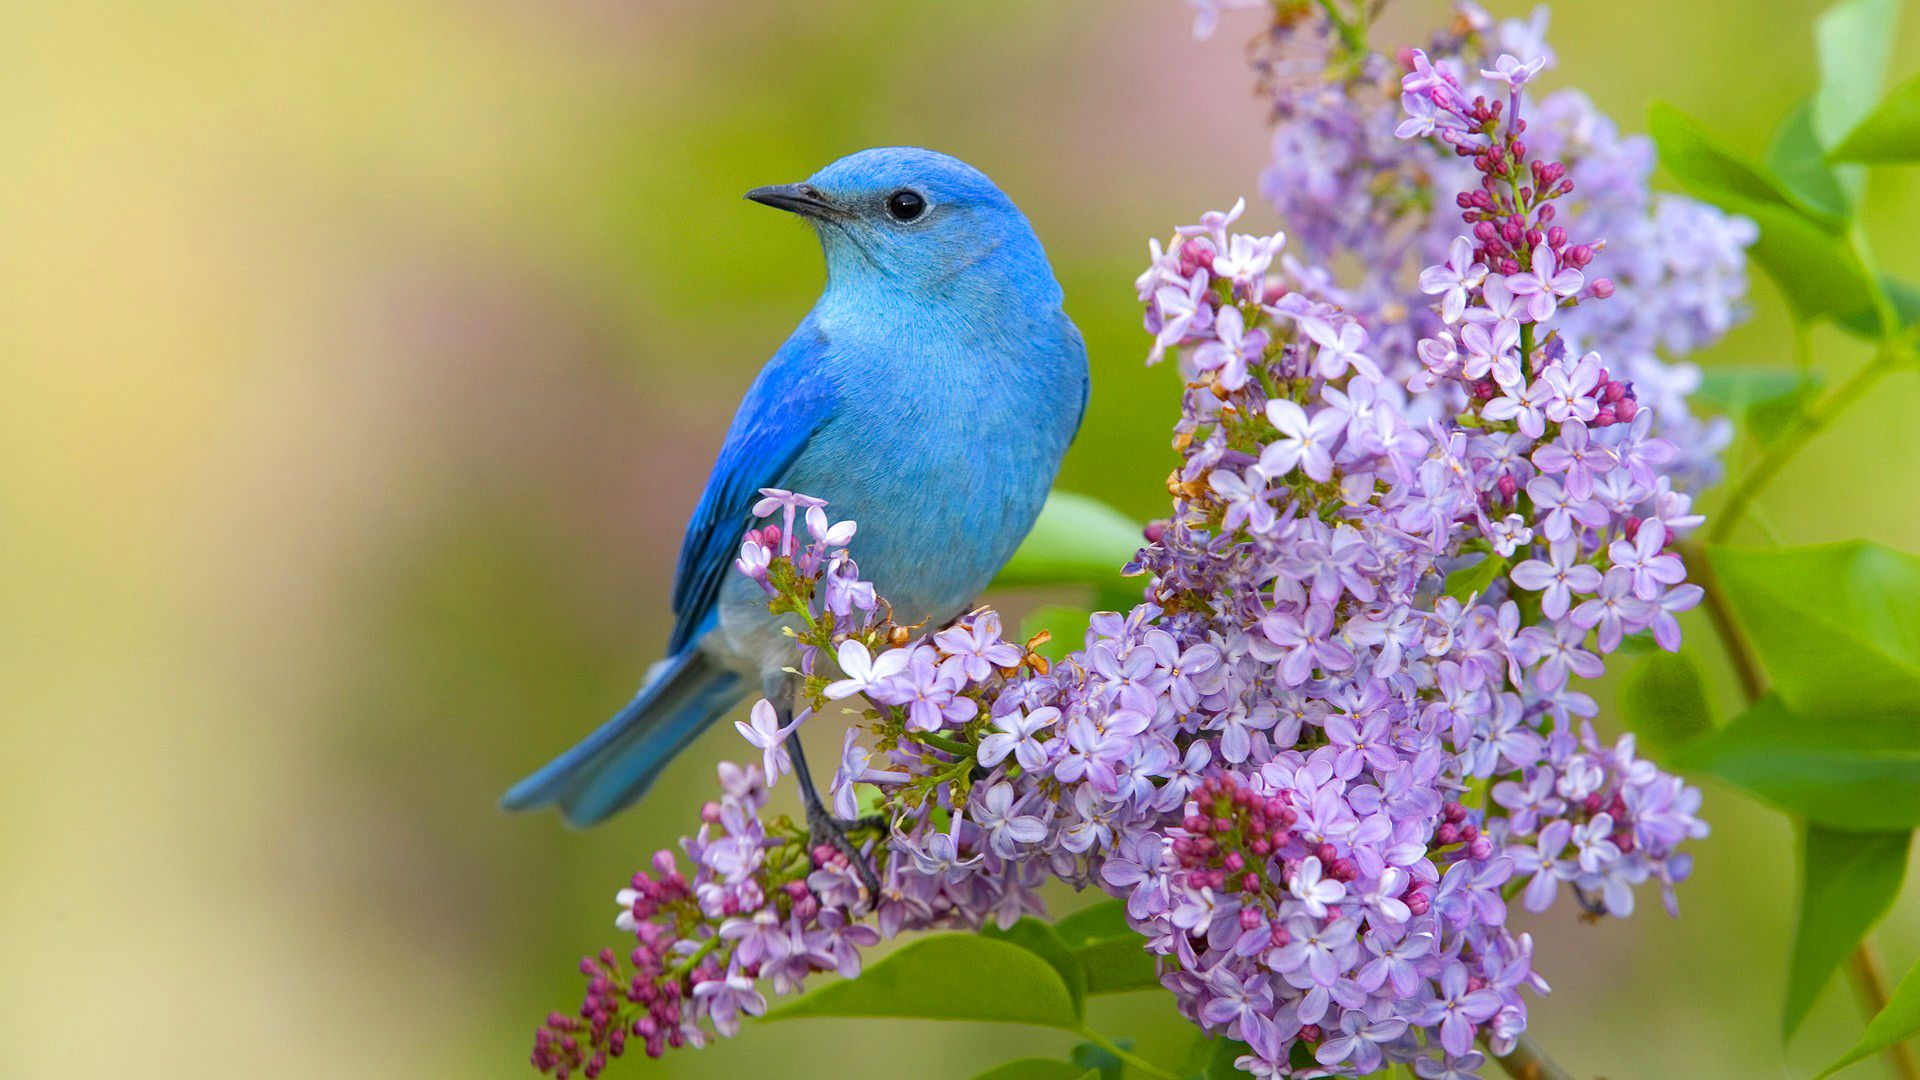 Bird And Butterfly download wallpaper image